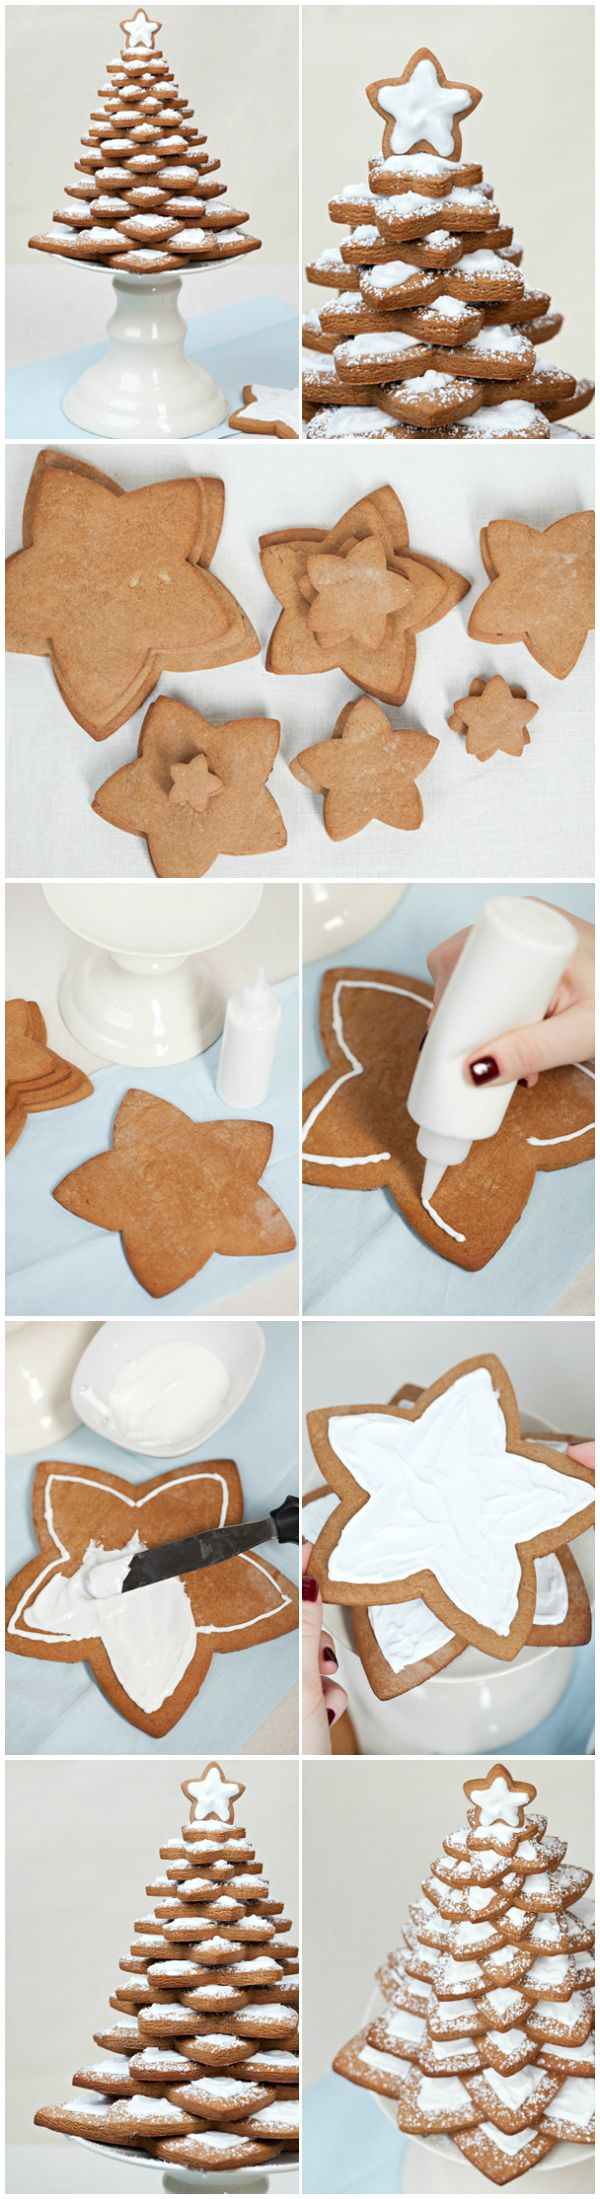 Recipe ● Tutorial ● Gingerbread Tree